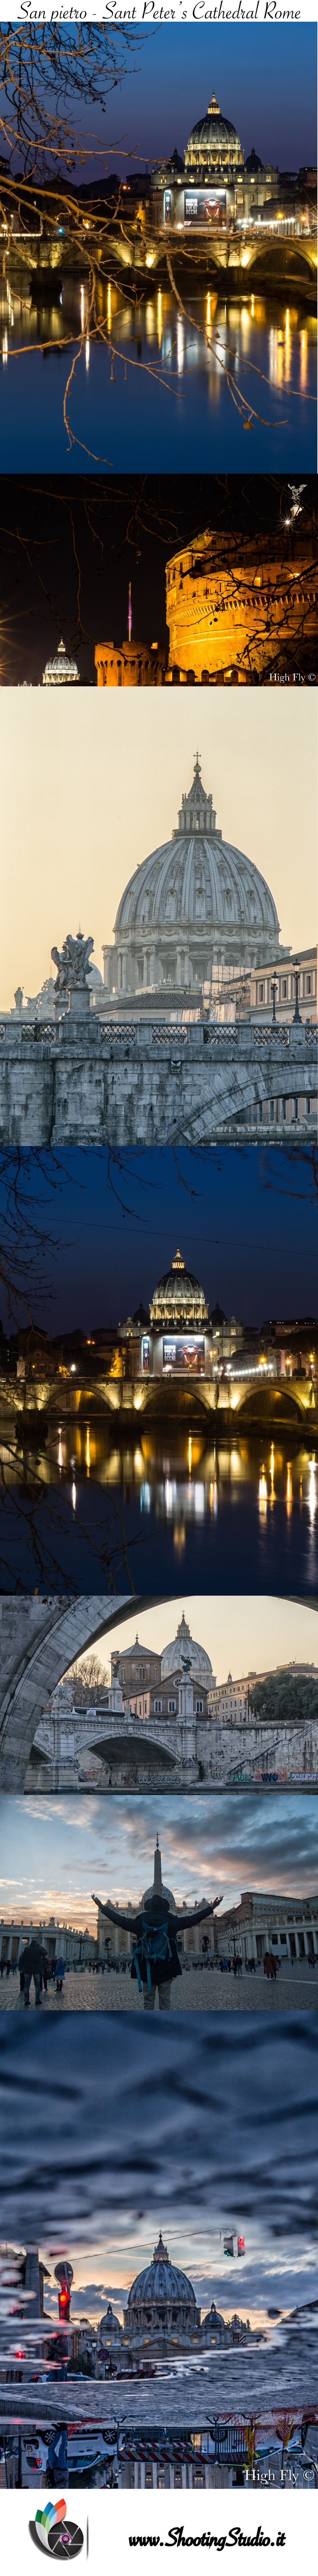 Sant Peter's Cathedral , Piazza san Pietro Roma, sant Petrr's place Rome. #HighFly #shootingstudio #shooting #studio #photo #foto #modelle #event #crew #promotion #Hostess #artist #vip #photographer #models #wonderfull #girls #photobook #fotobook #bookfotografico #cosplay #fantasy #wedding #ritratti #portrait  #highfly #setfotografico #fotografo #fotografi #photo #photobook #fotografia #photographer #hostess #model #work #image #foto #bookfografico